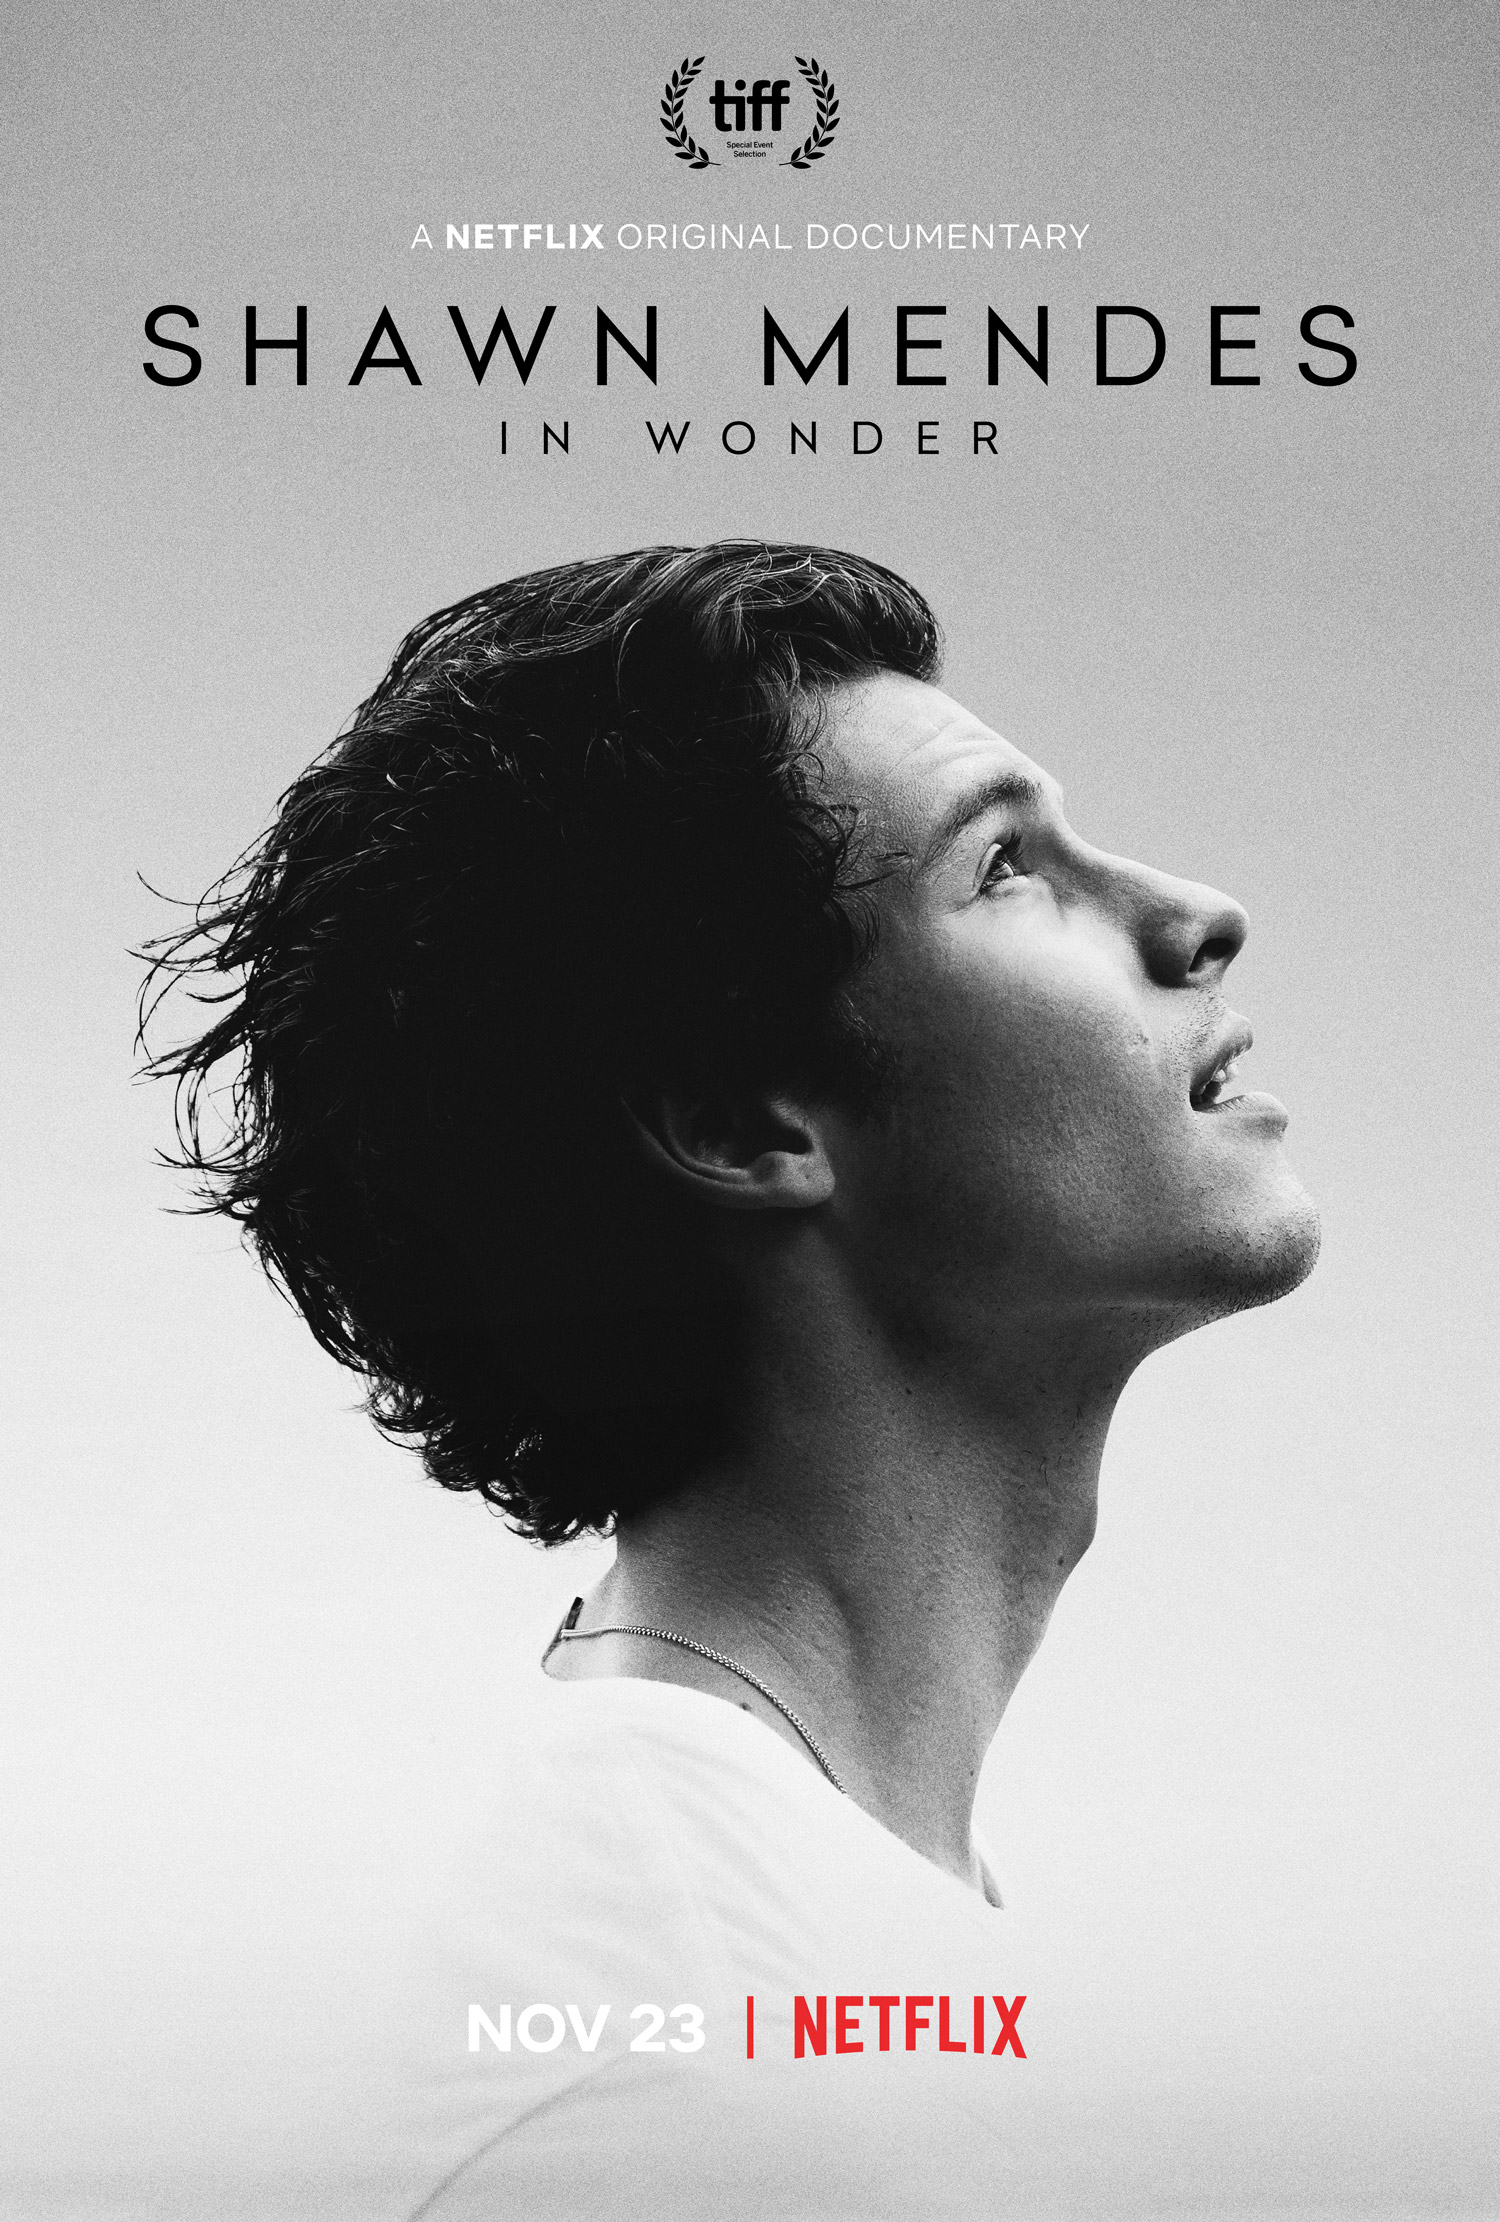 Watch Shawn Mendes perform Wonder Live